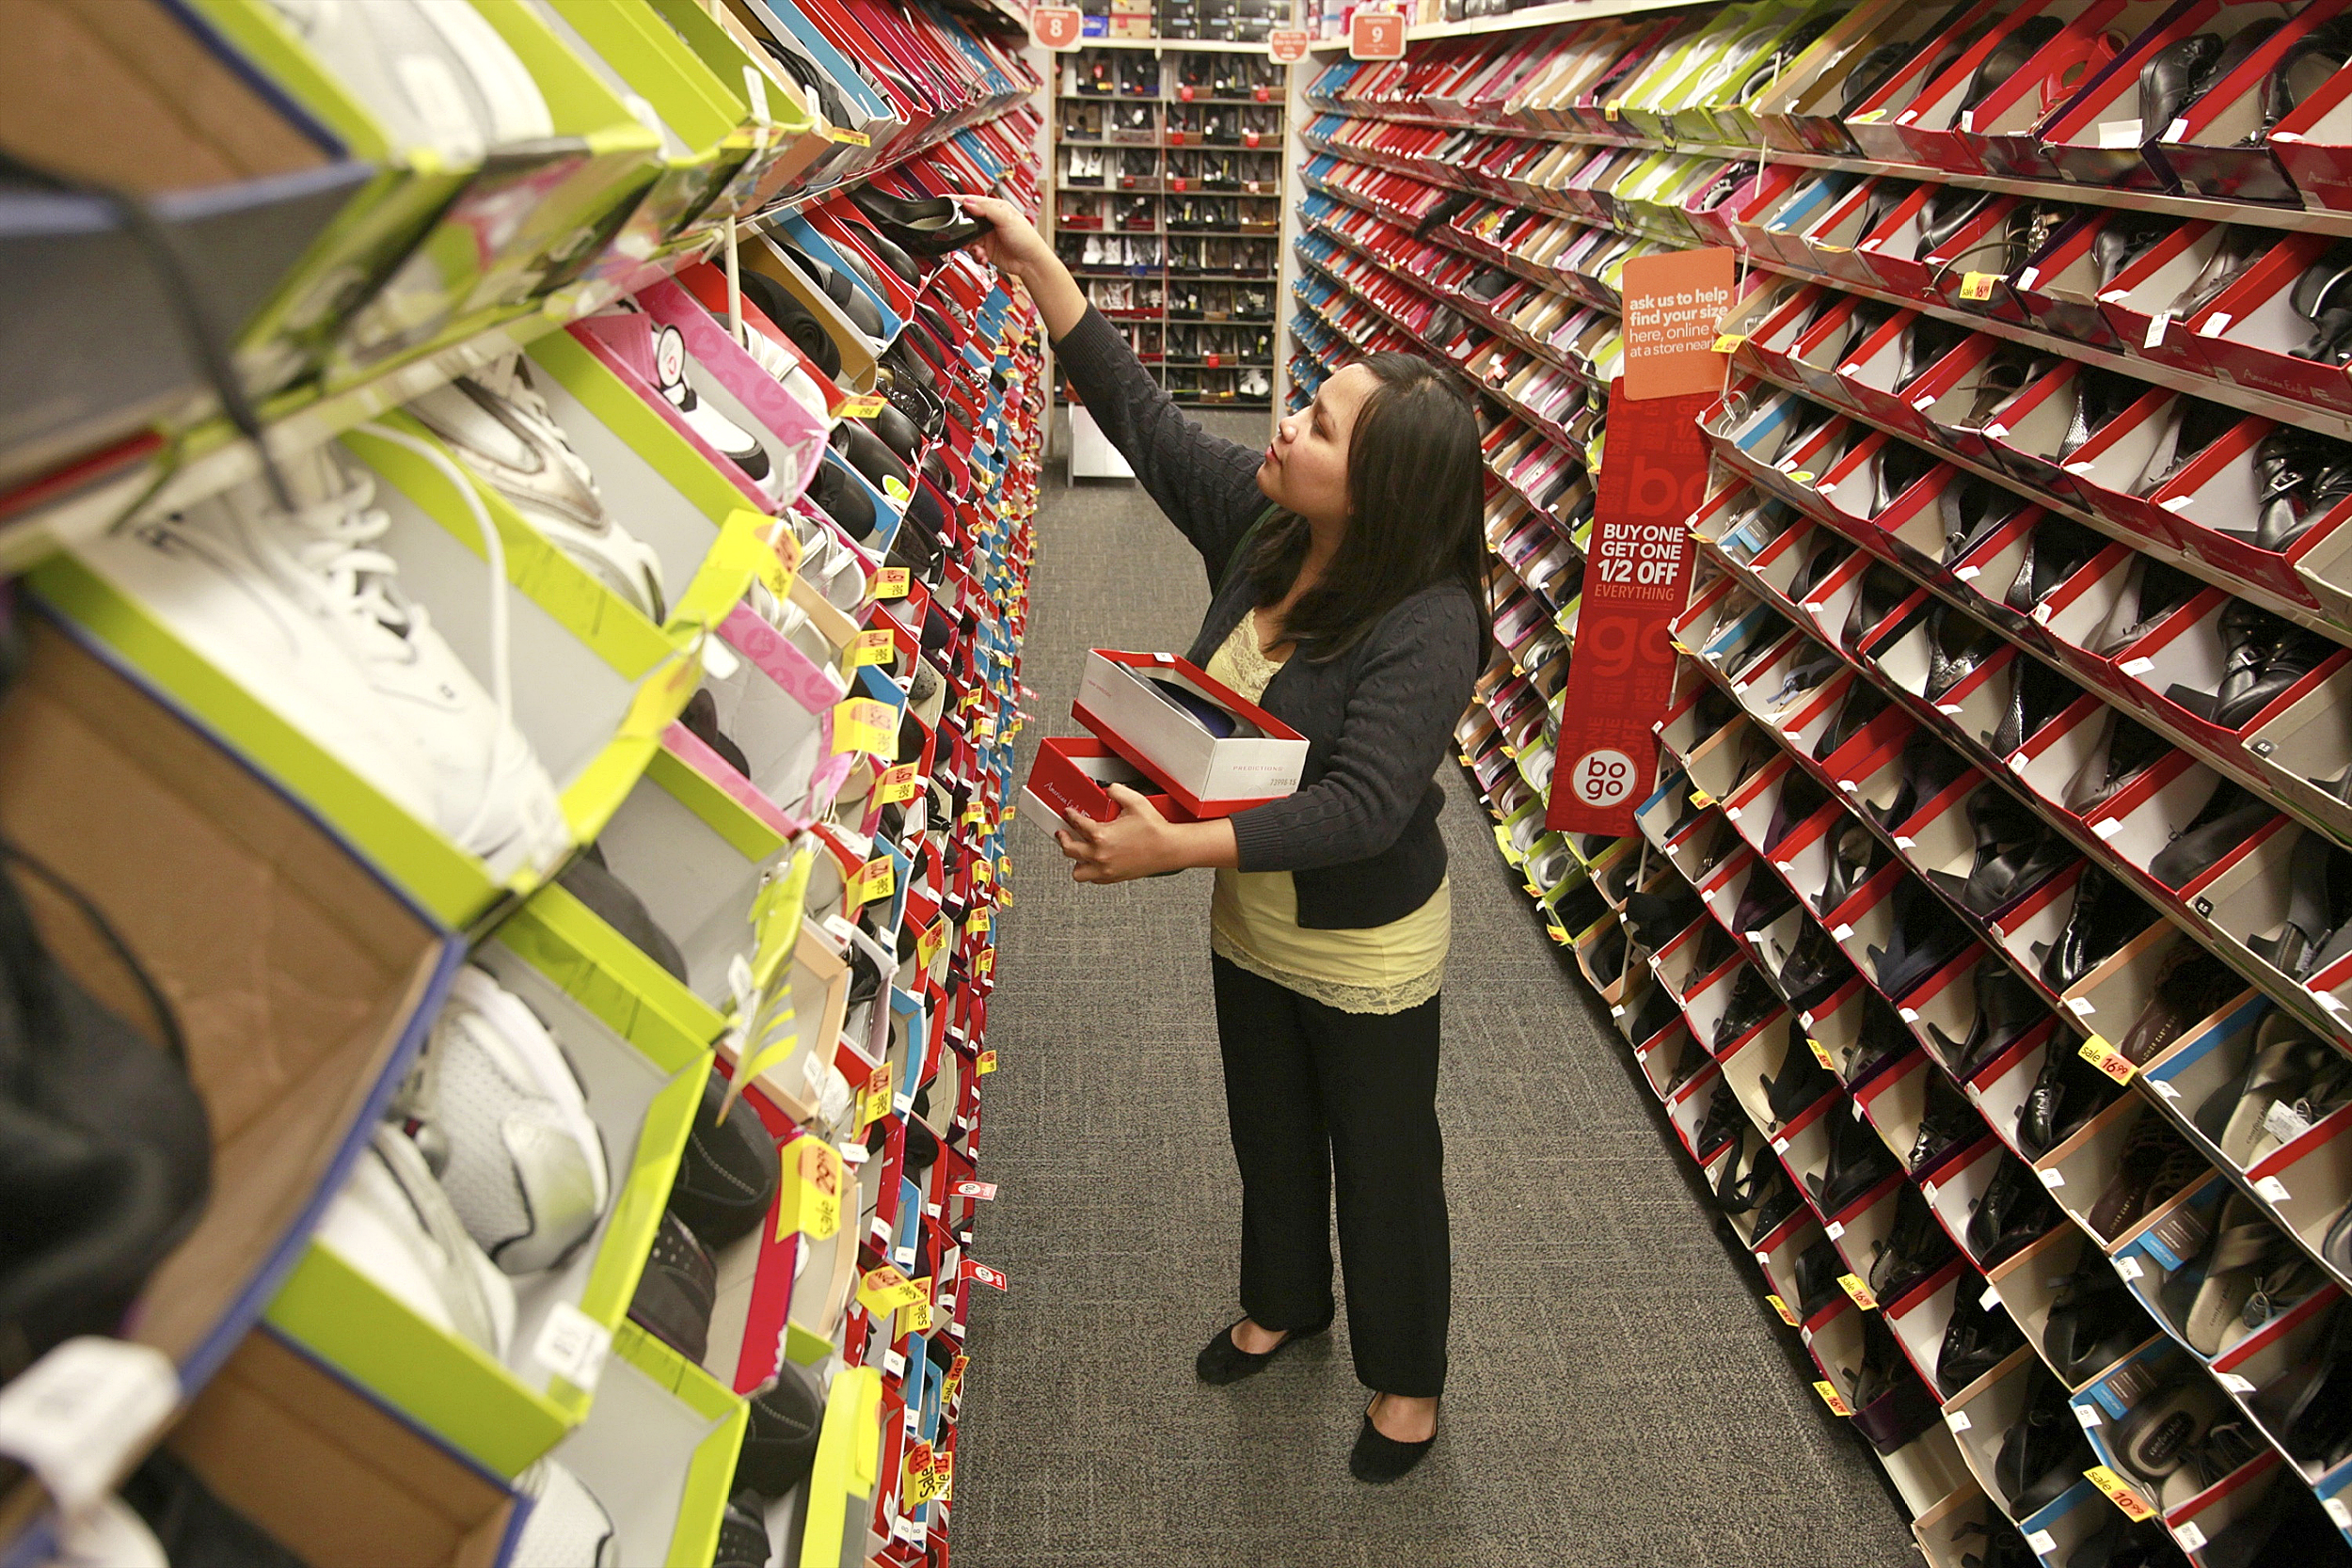 Payless shoe stores plans to close 2